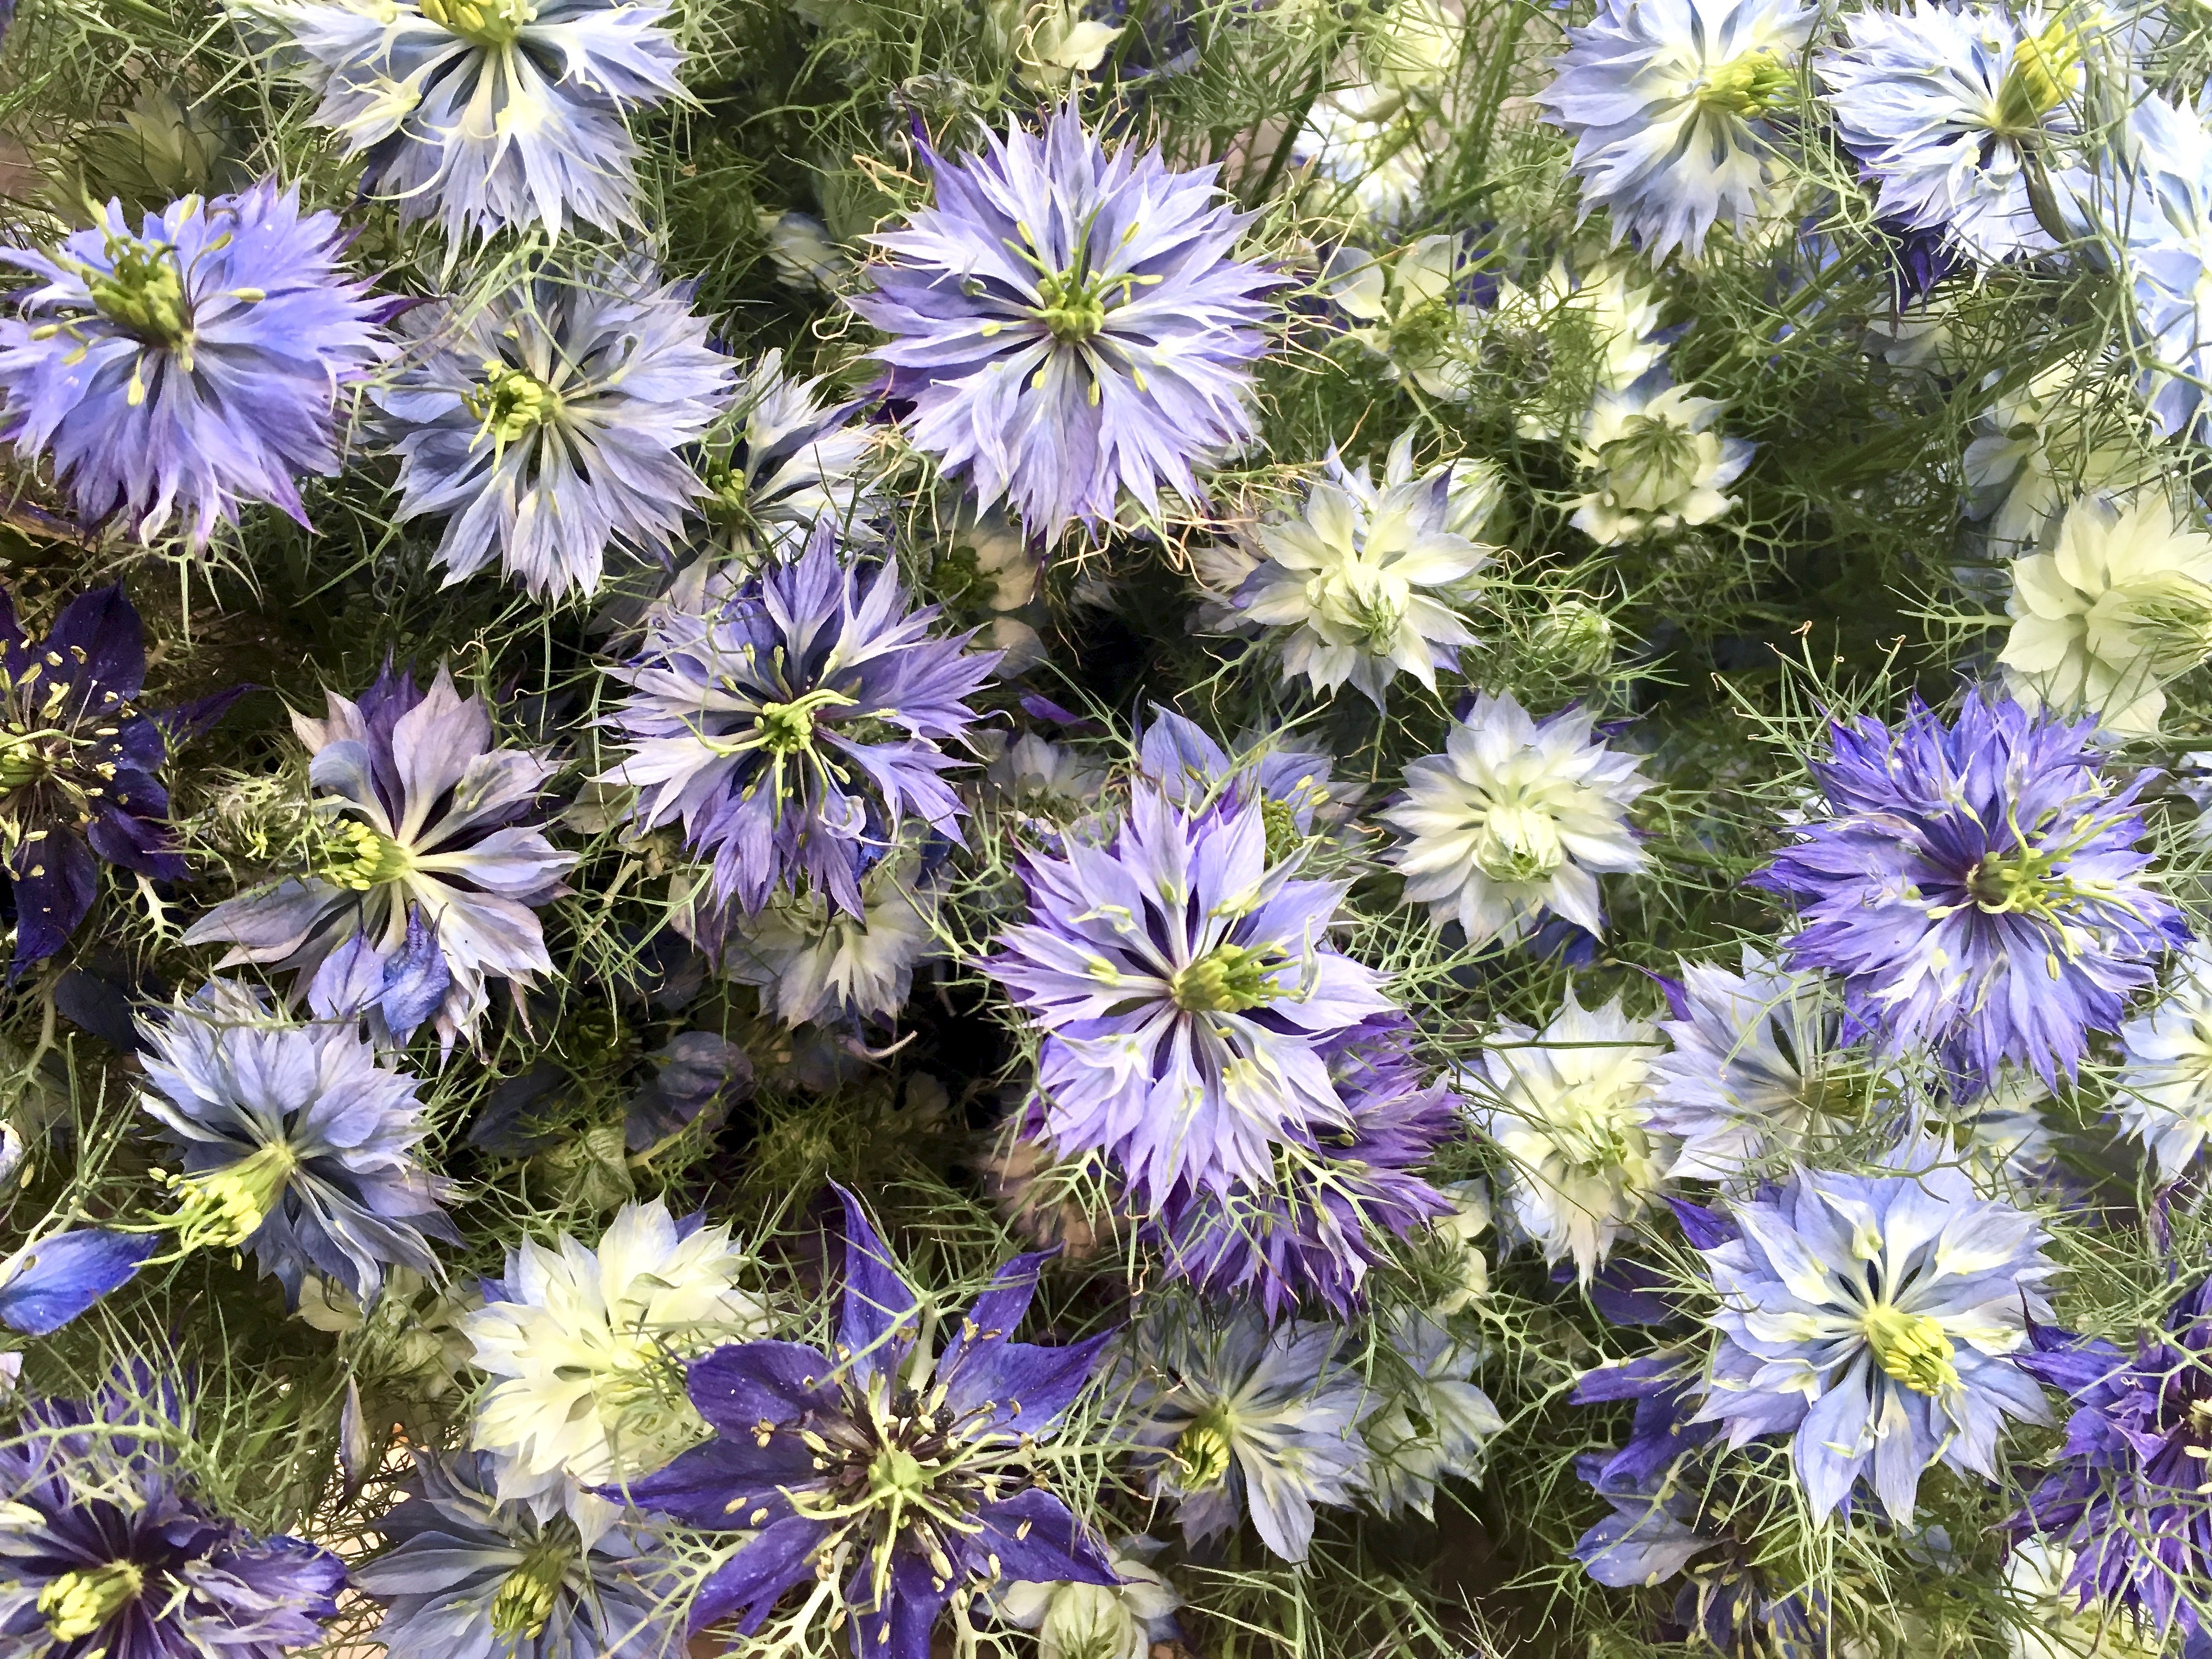 Love-in-a-mist.